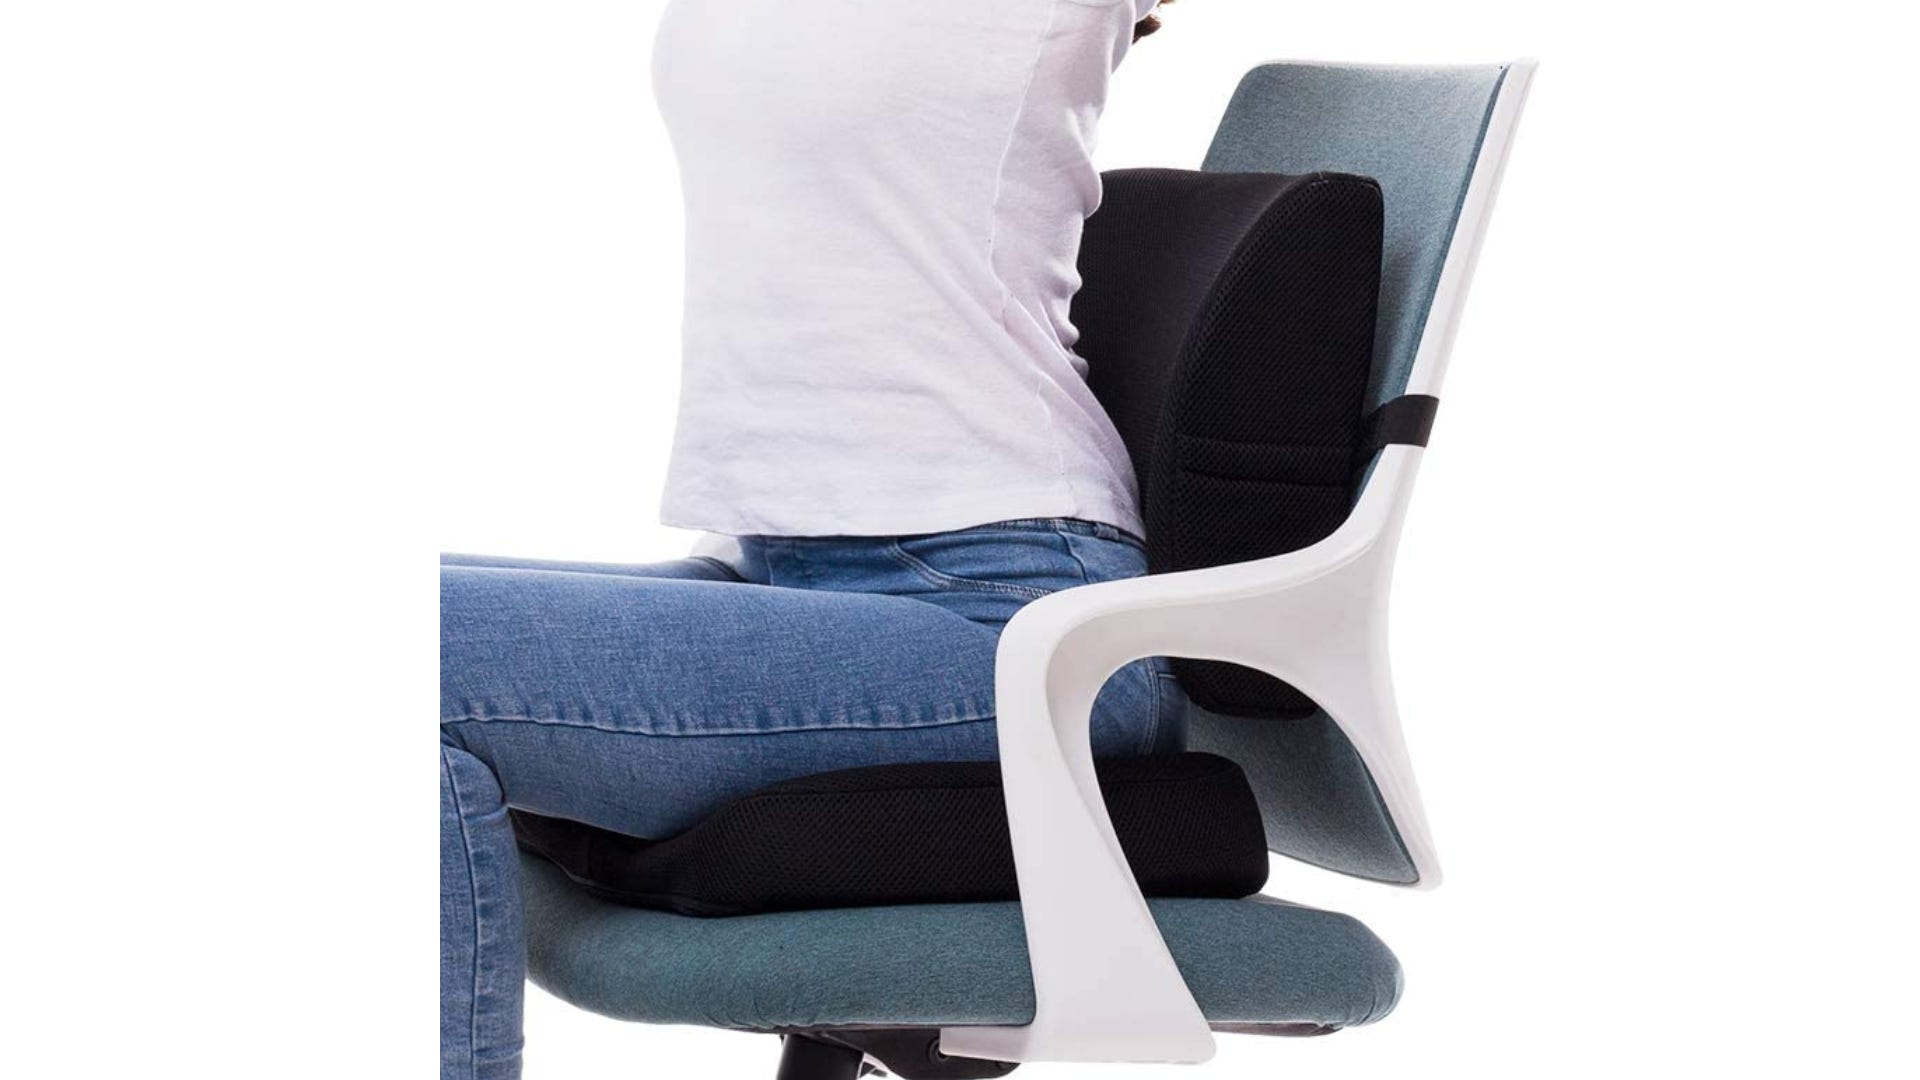 A person sitting in an office chair that has black seat and back cushions.